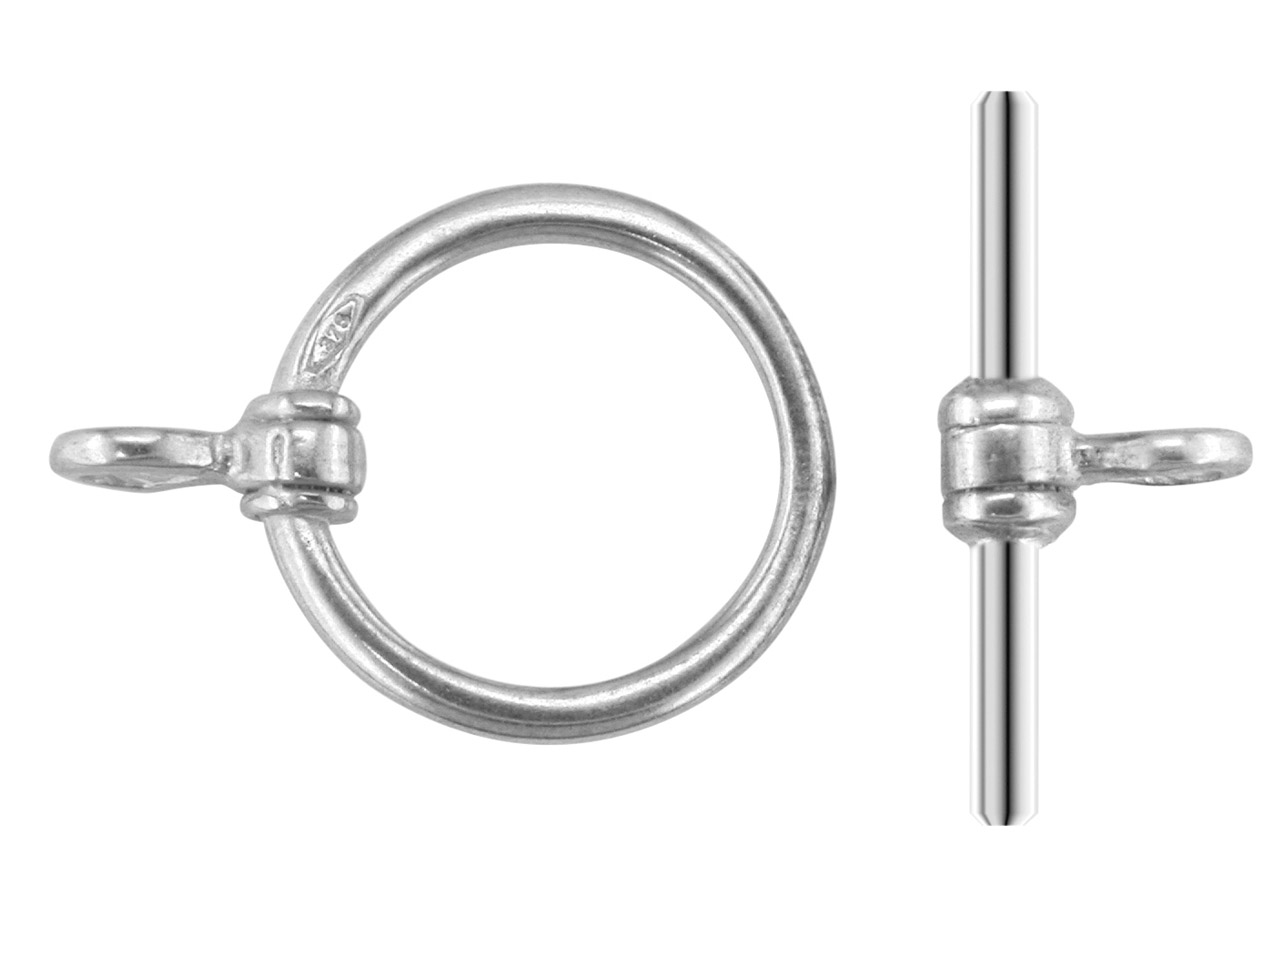 Sterling Silver Ring And Bar, Ring Diameter 7mm, Bar Length 10mm